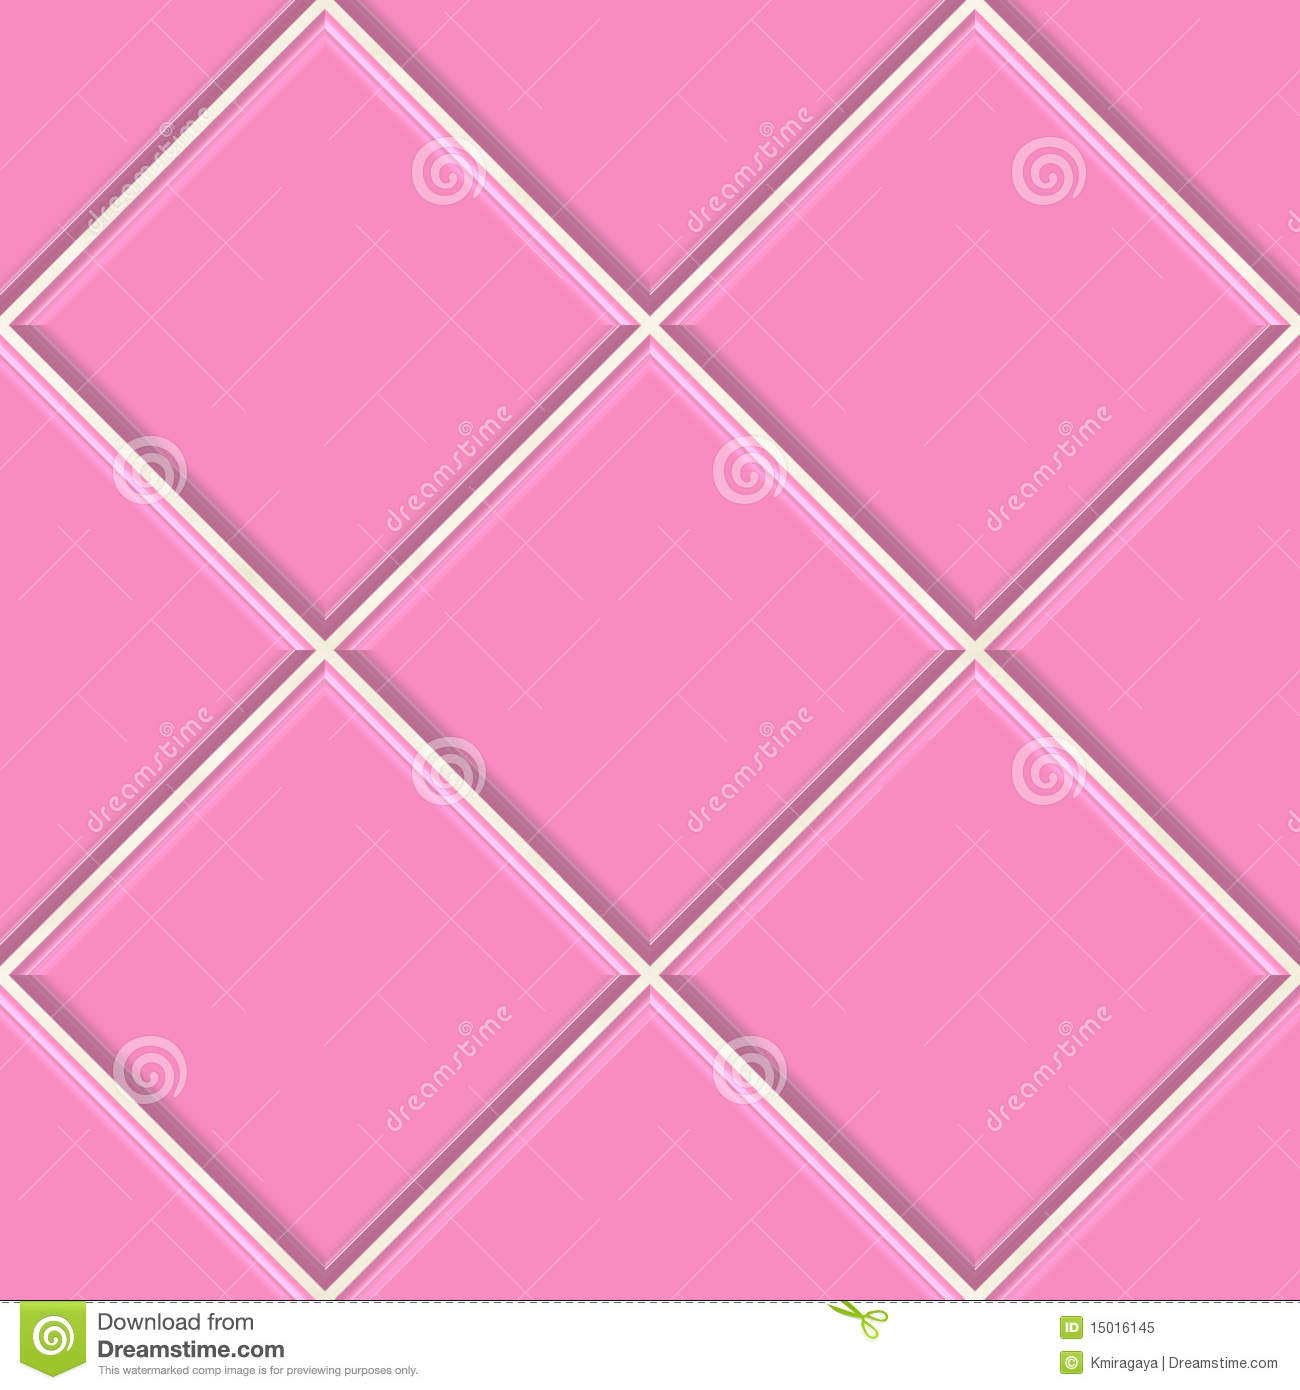 Perfect But Today We Will Show You The Different Decorative Wall Tiles Bathroom That  Take A Look At The Pink Ceramic Tile Pattern That Was Used Here By The Designer That Is Very Attractive With The Silver Fixtures The Clean And Smooth Texture